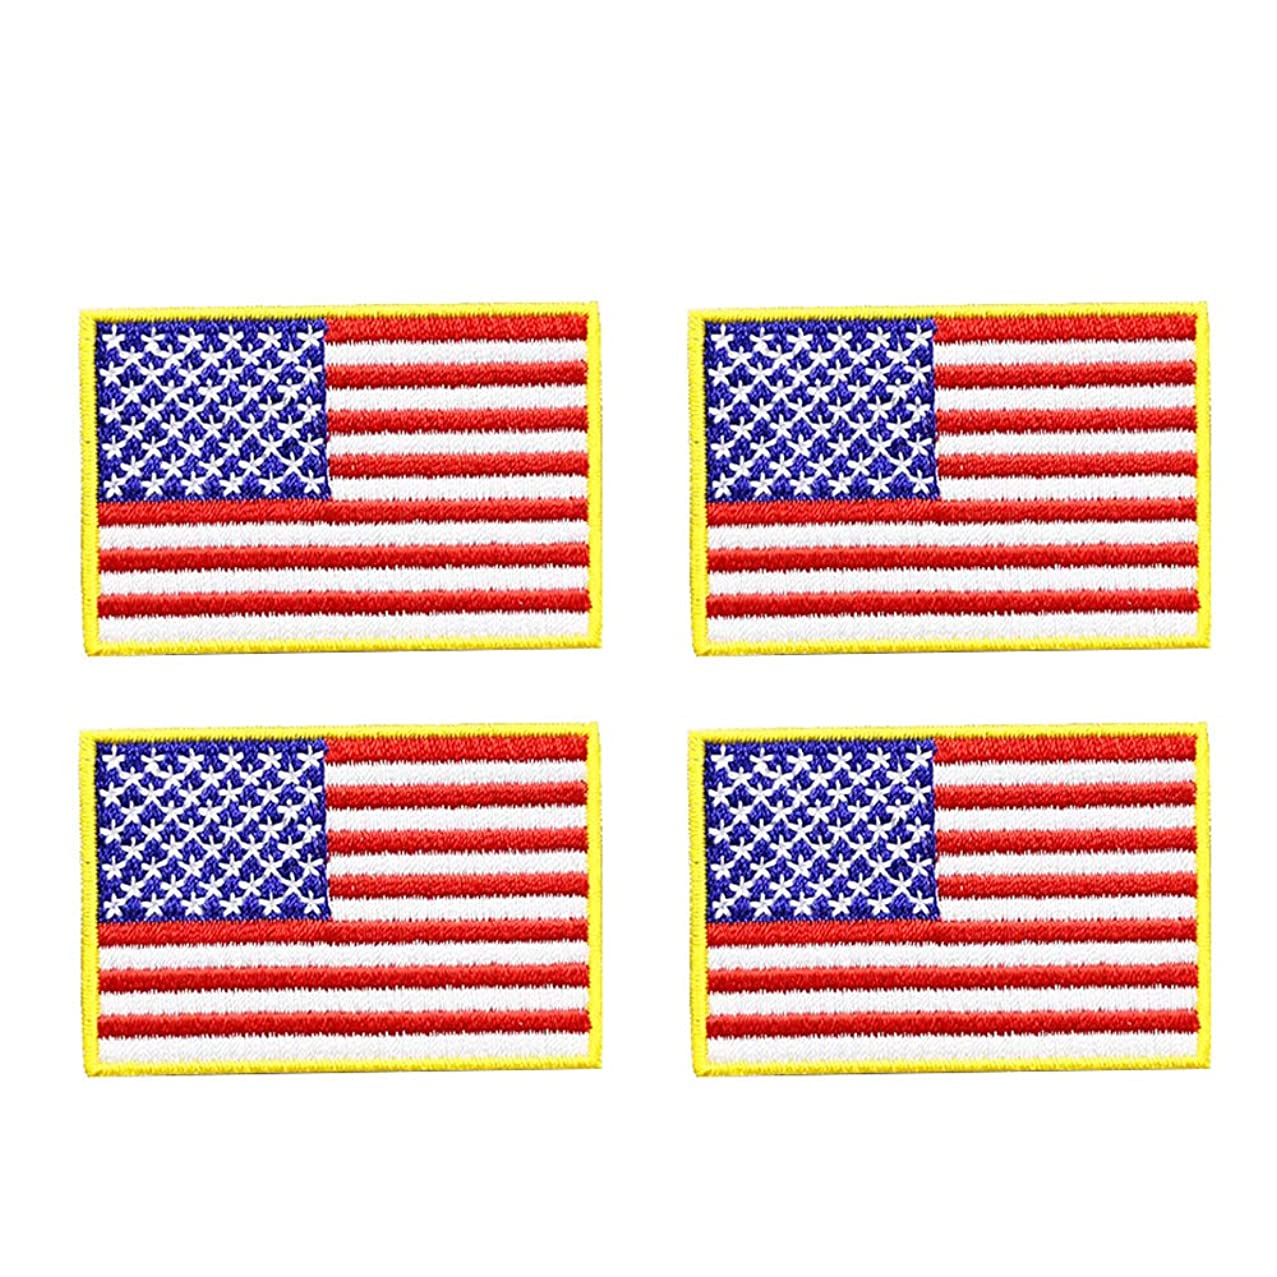 4 Pcs American US Flag Embroidered Cloth Sew on Iron on Patch Golden Yellow Border. United States of America Military Uniform Iron On Sew On Emblem.